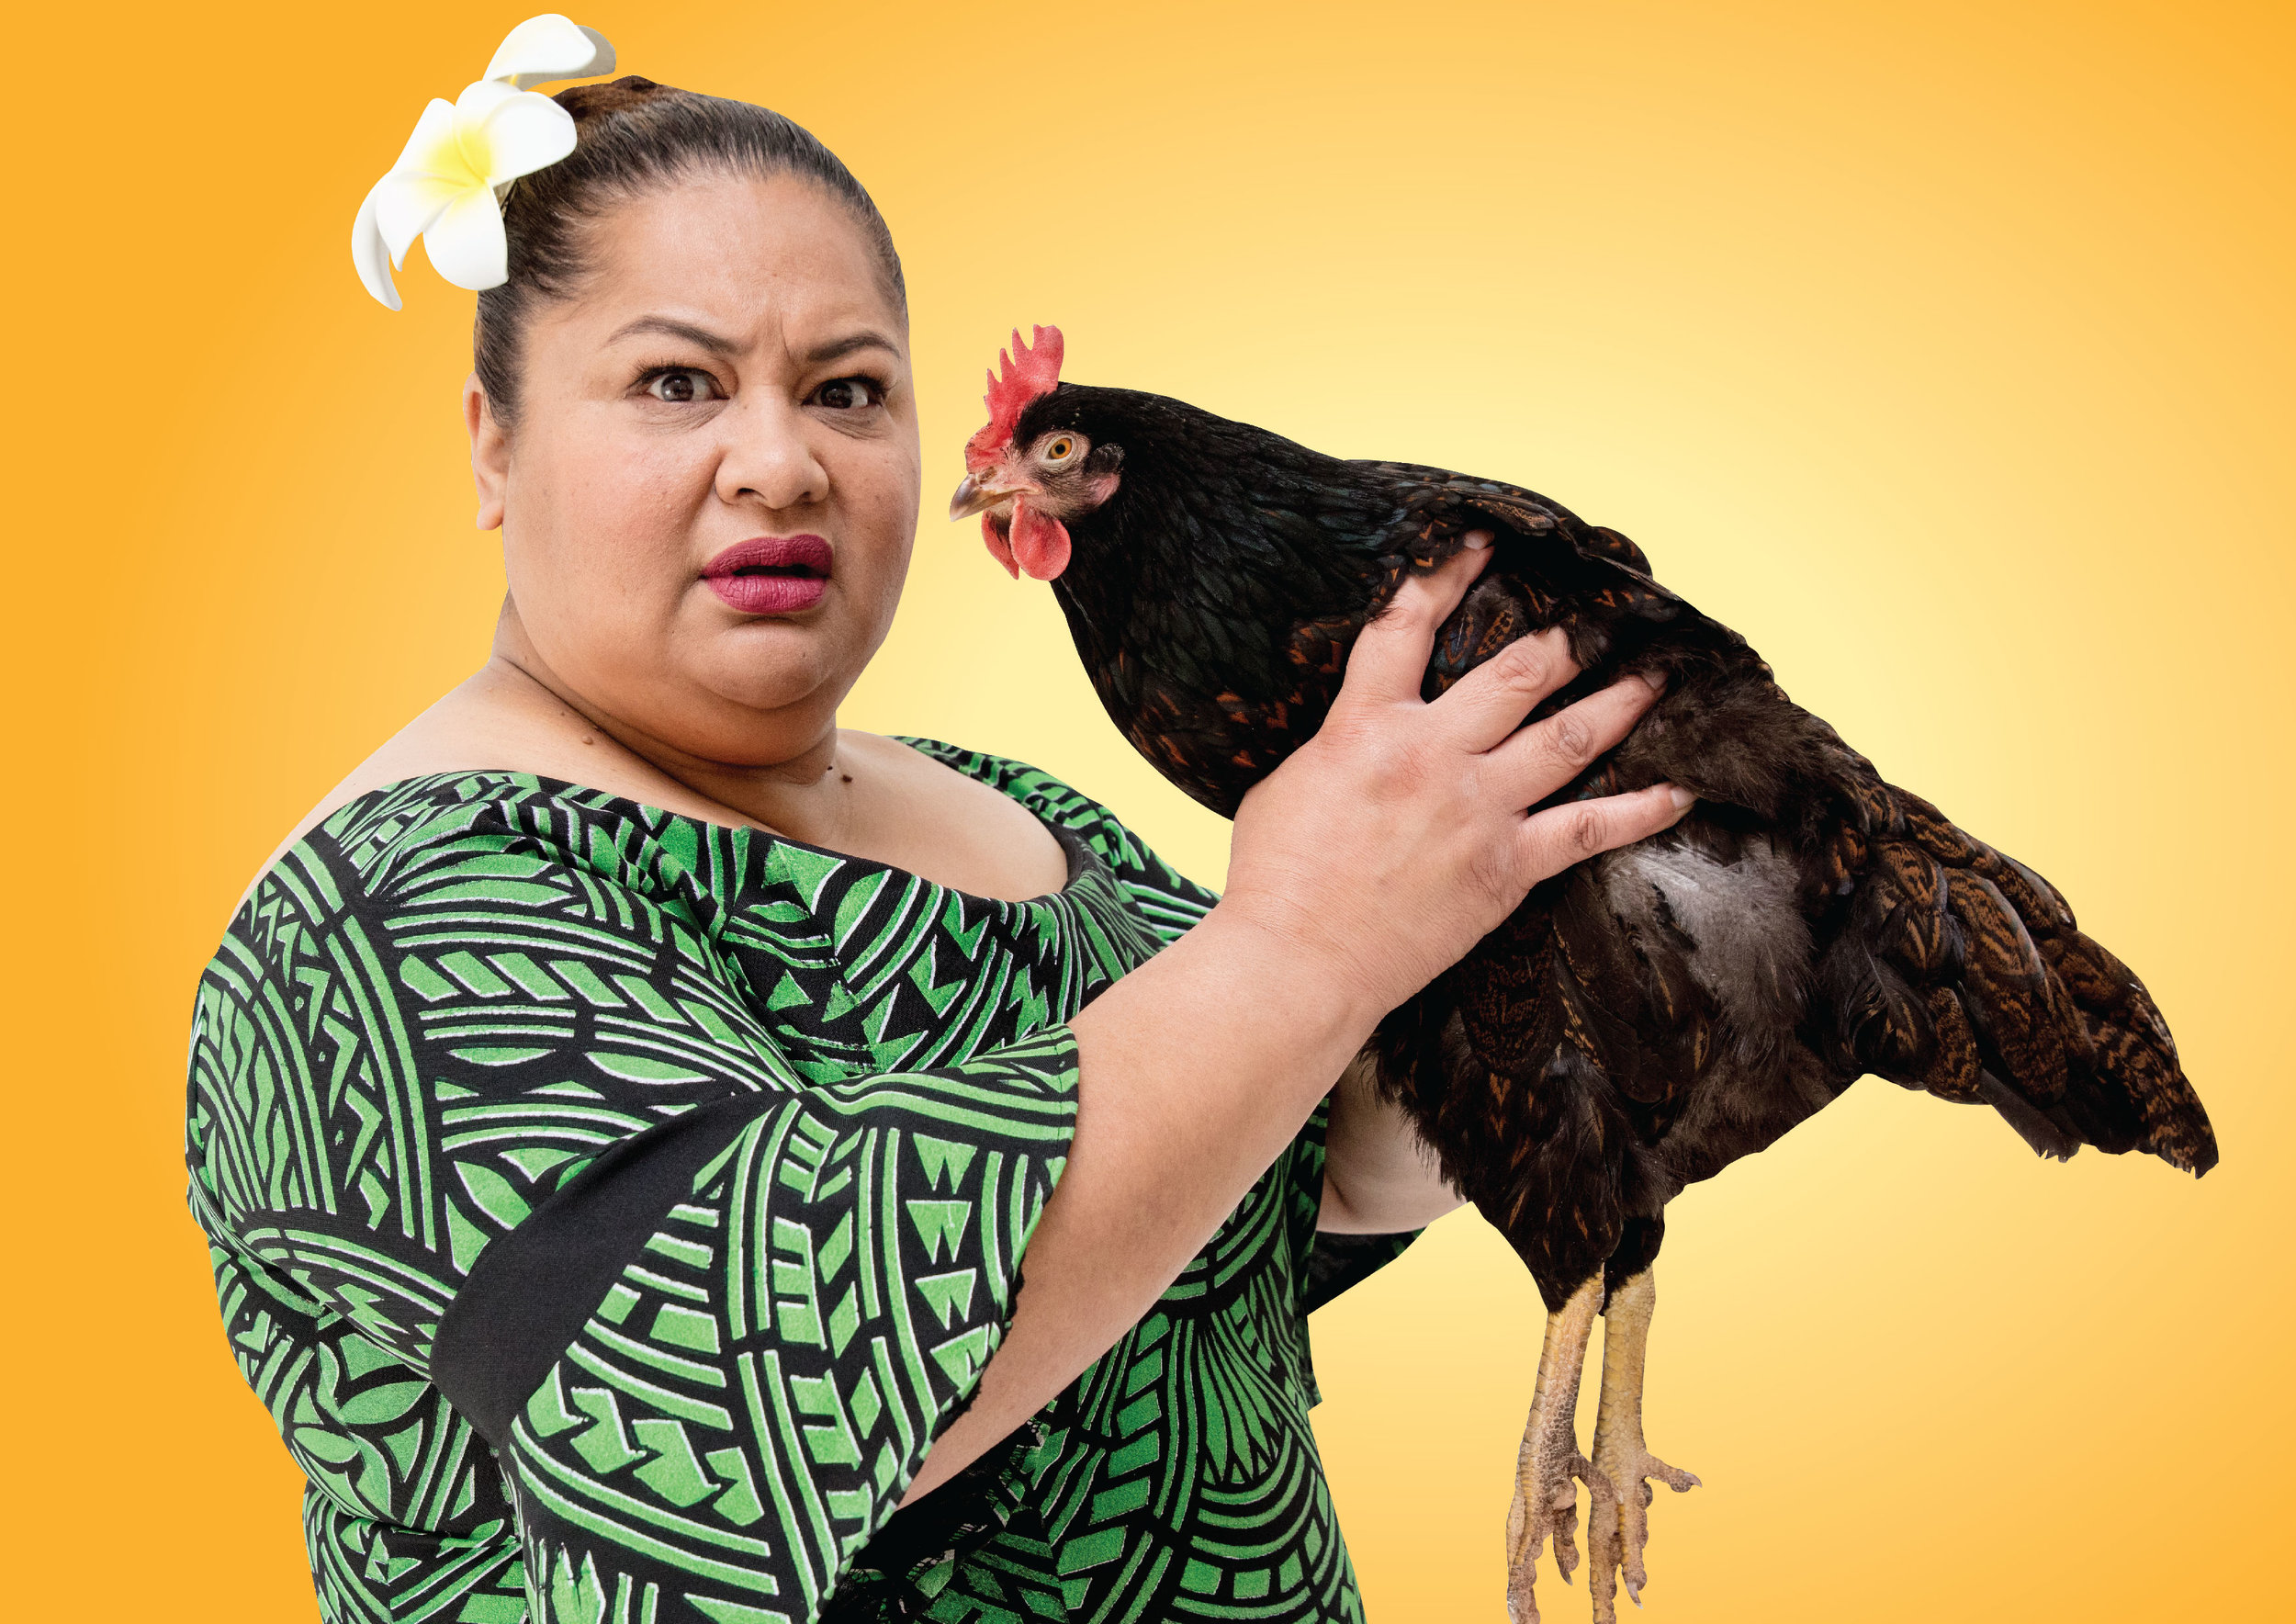 Still Life With Chickens - An interview with Goretti Chadwick who plays Mama.